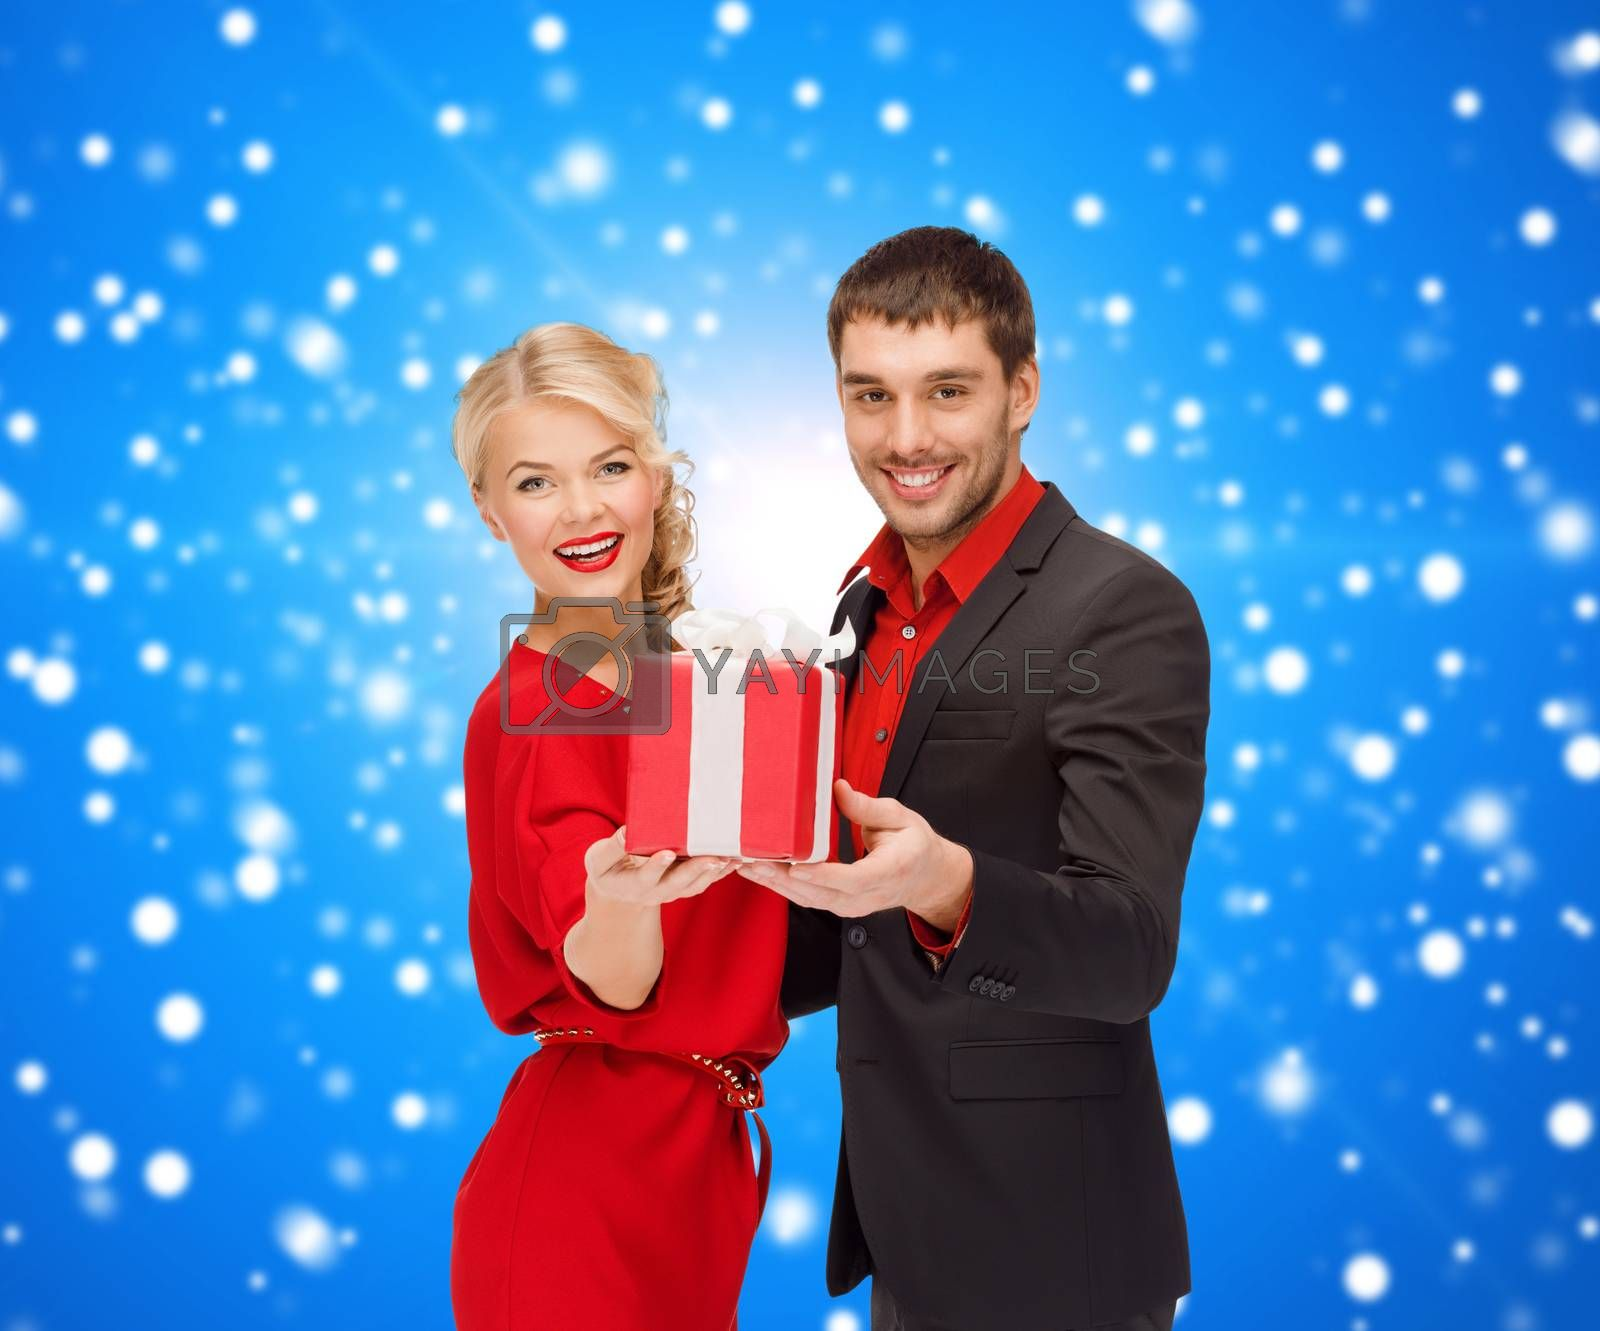 christmas, holidays, valentine's day, celebration and people concept - smiling man and woman with present over blue snowy background